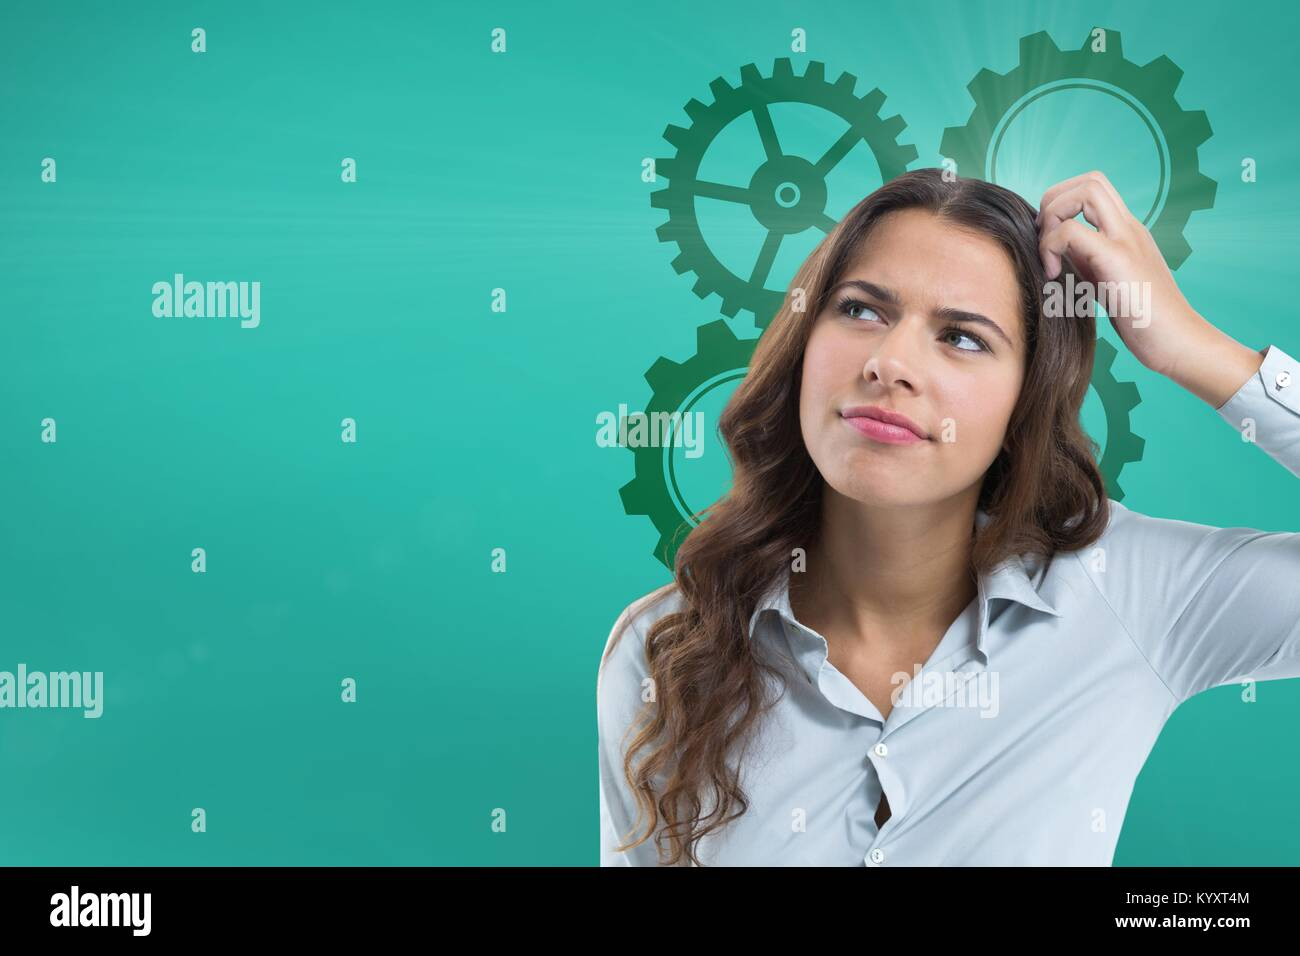 Confused woman scratching her head looking up with cogs - Stock Image